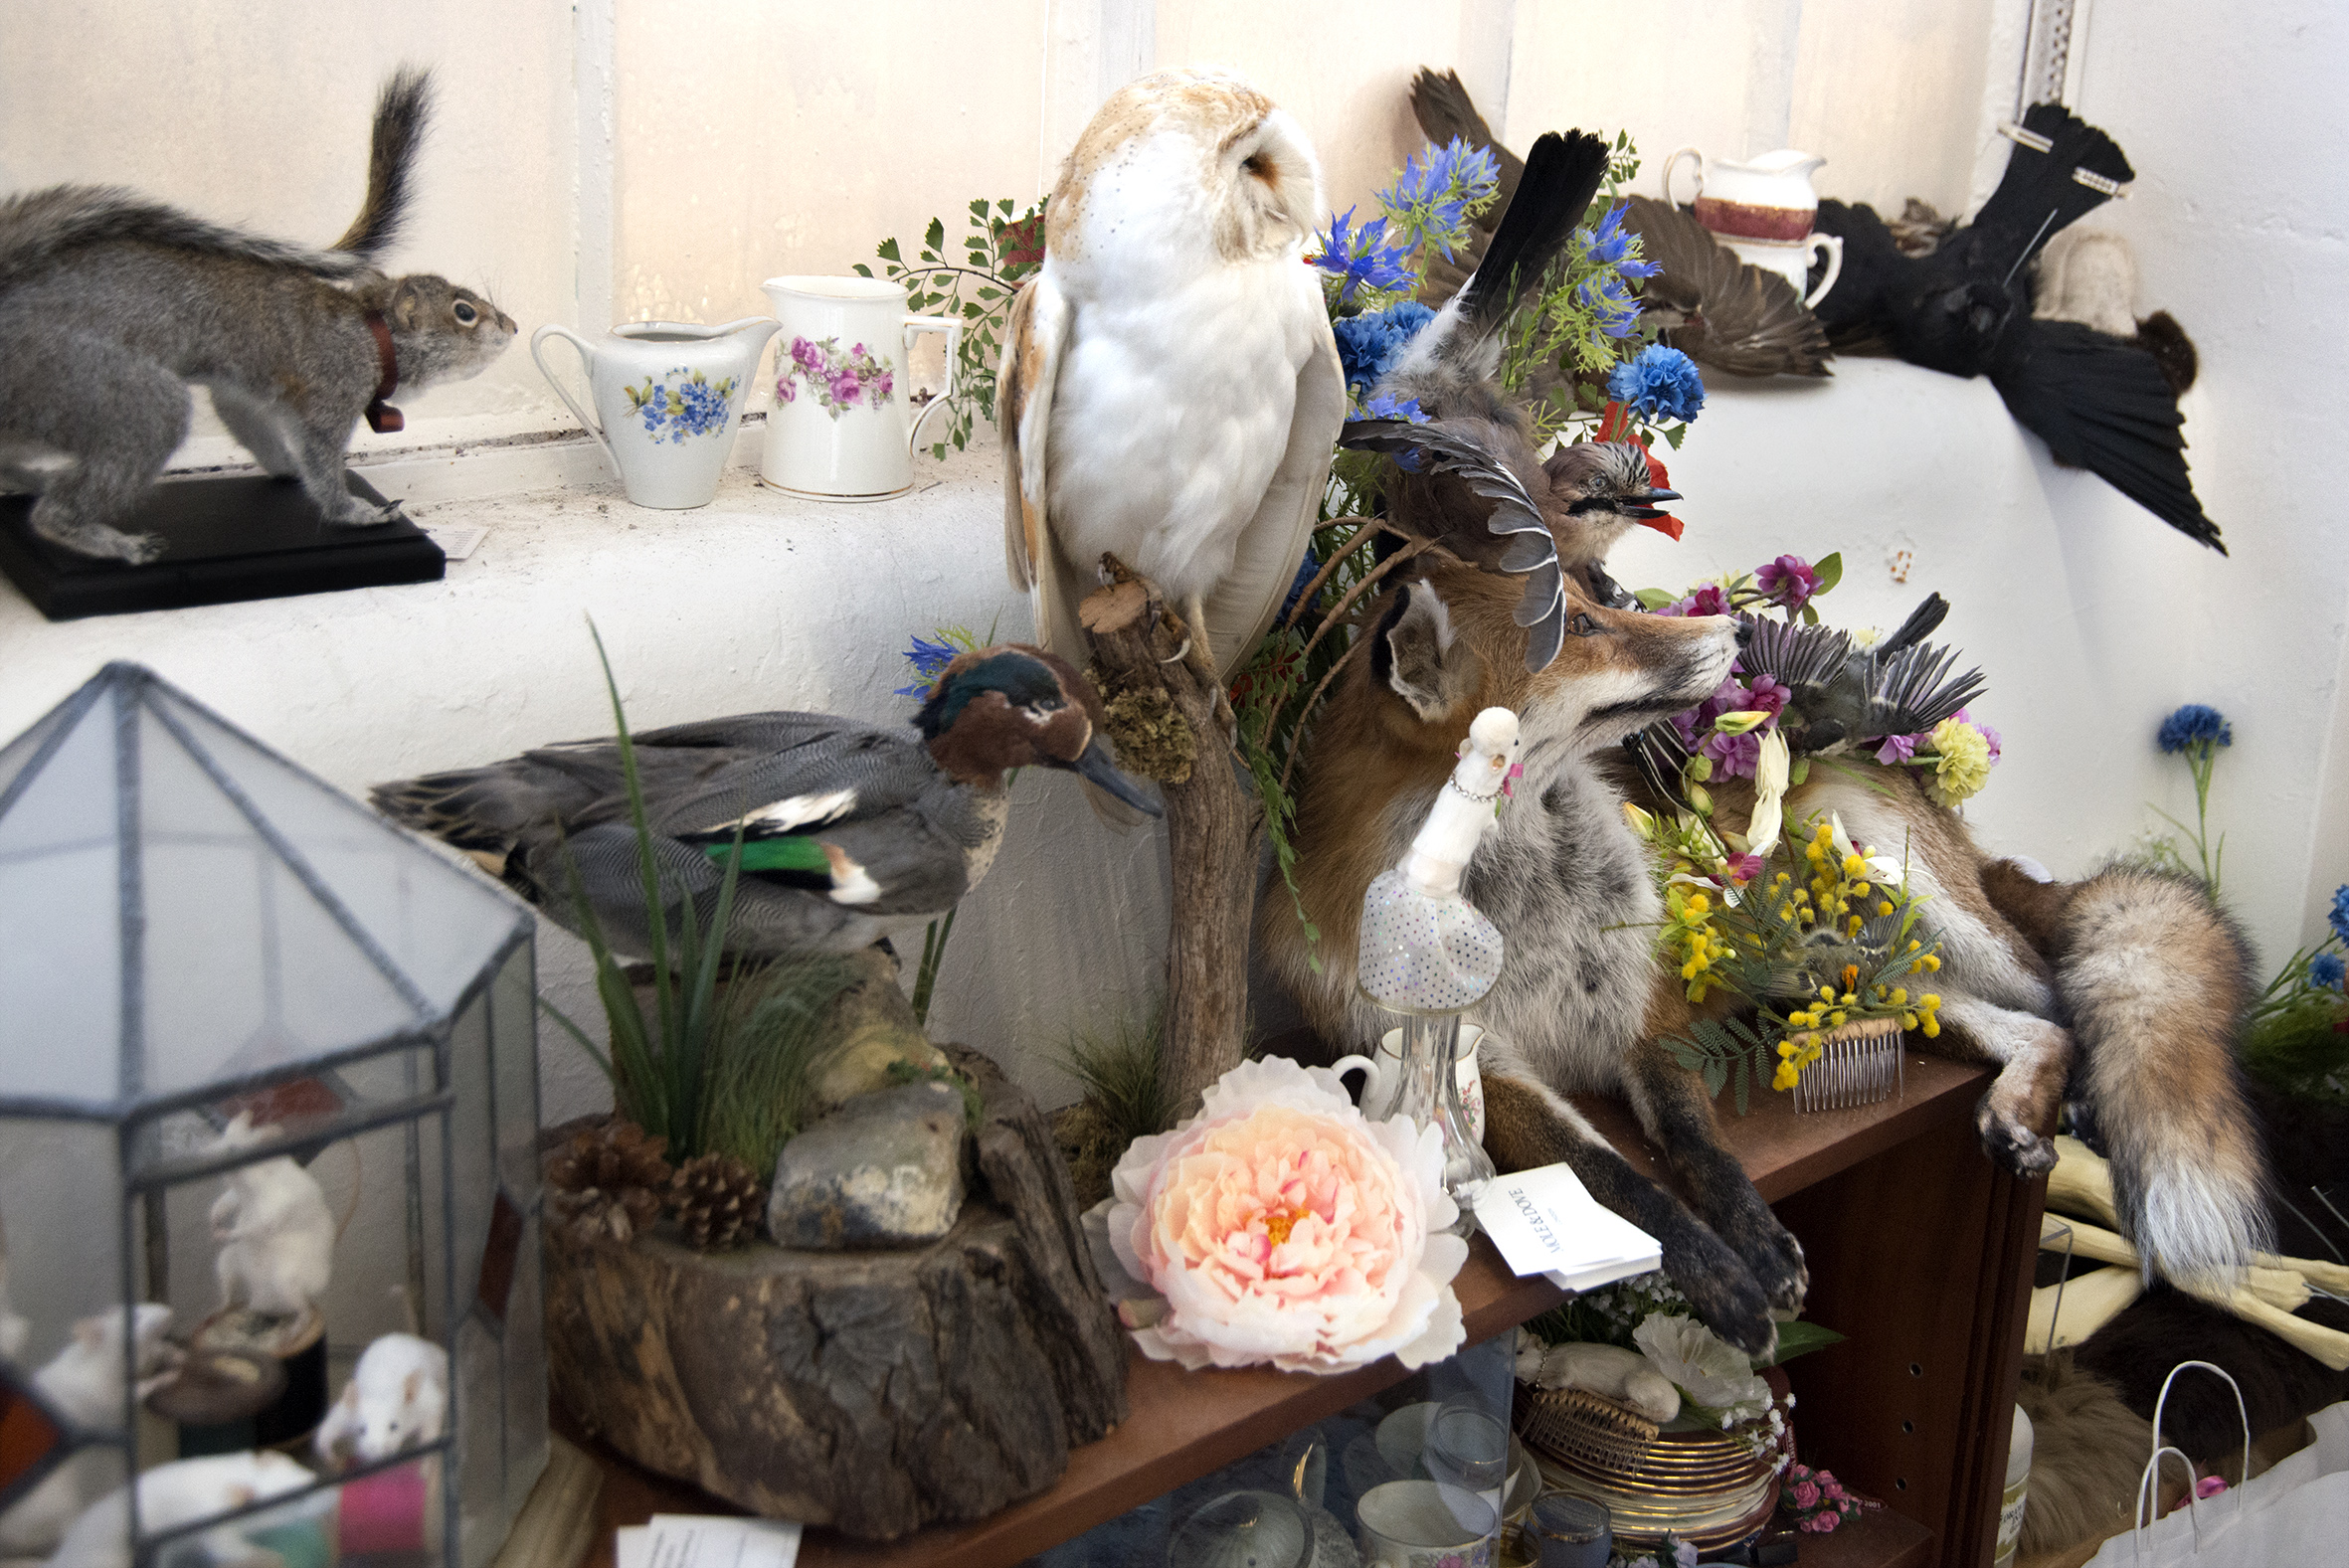 taxidermy_women_ethical_sammy_cockhill_sarah_keen_mole_dove_curious_menagerie_